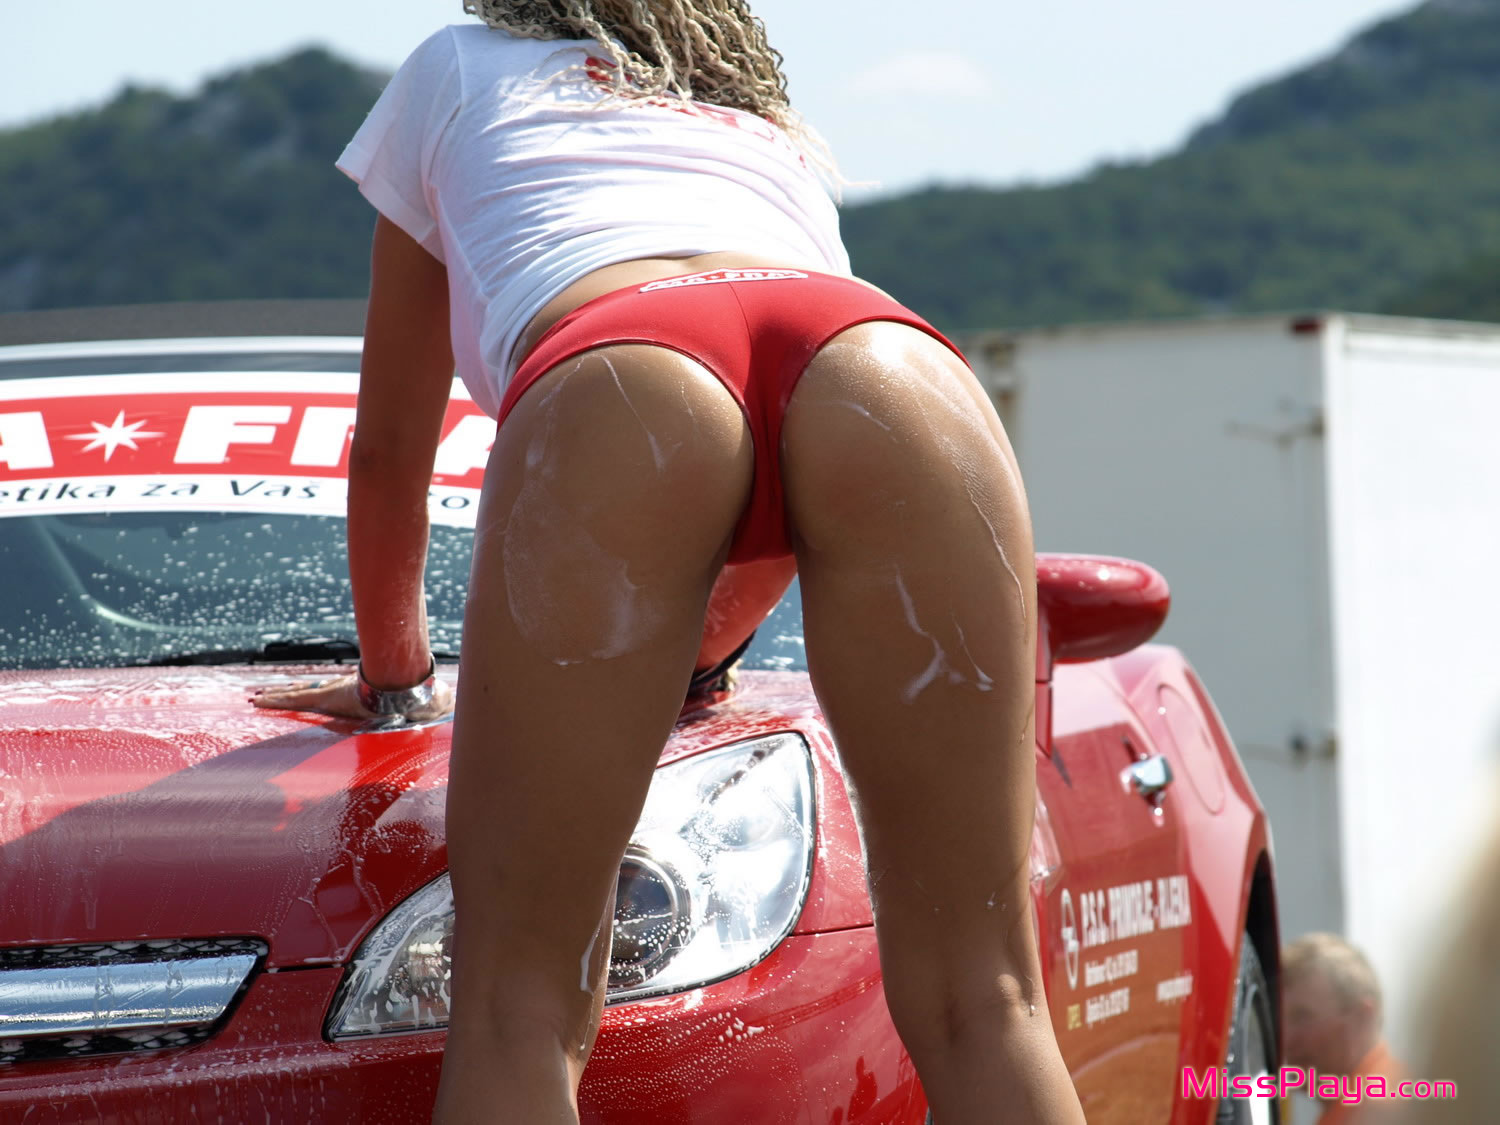 Car Wash Where Women In Bikinis Provide The Service While -1377